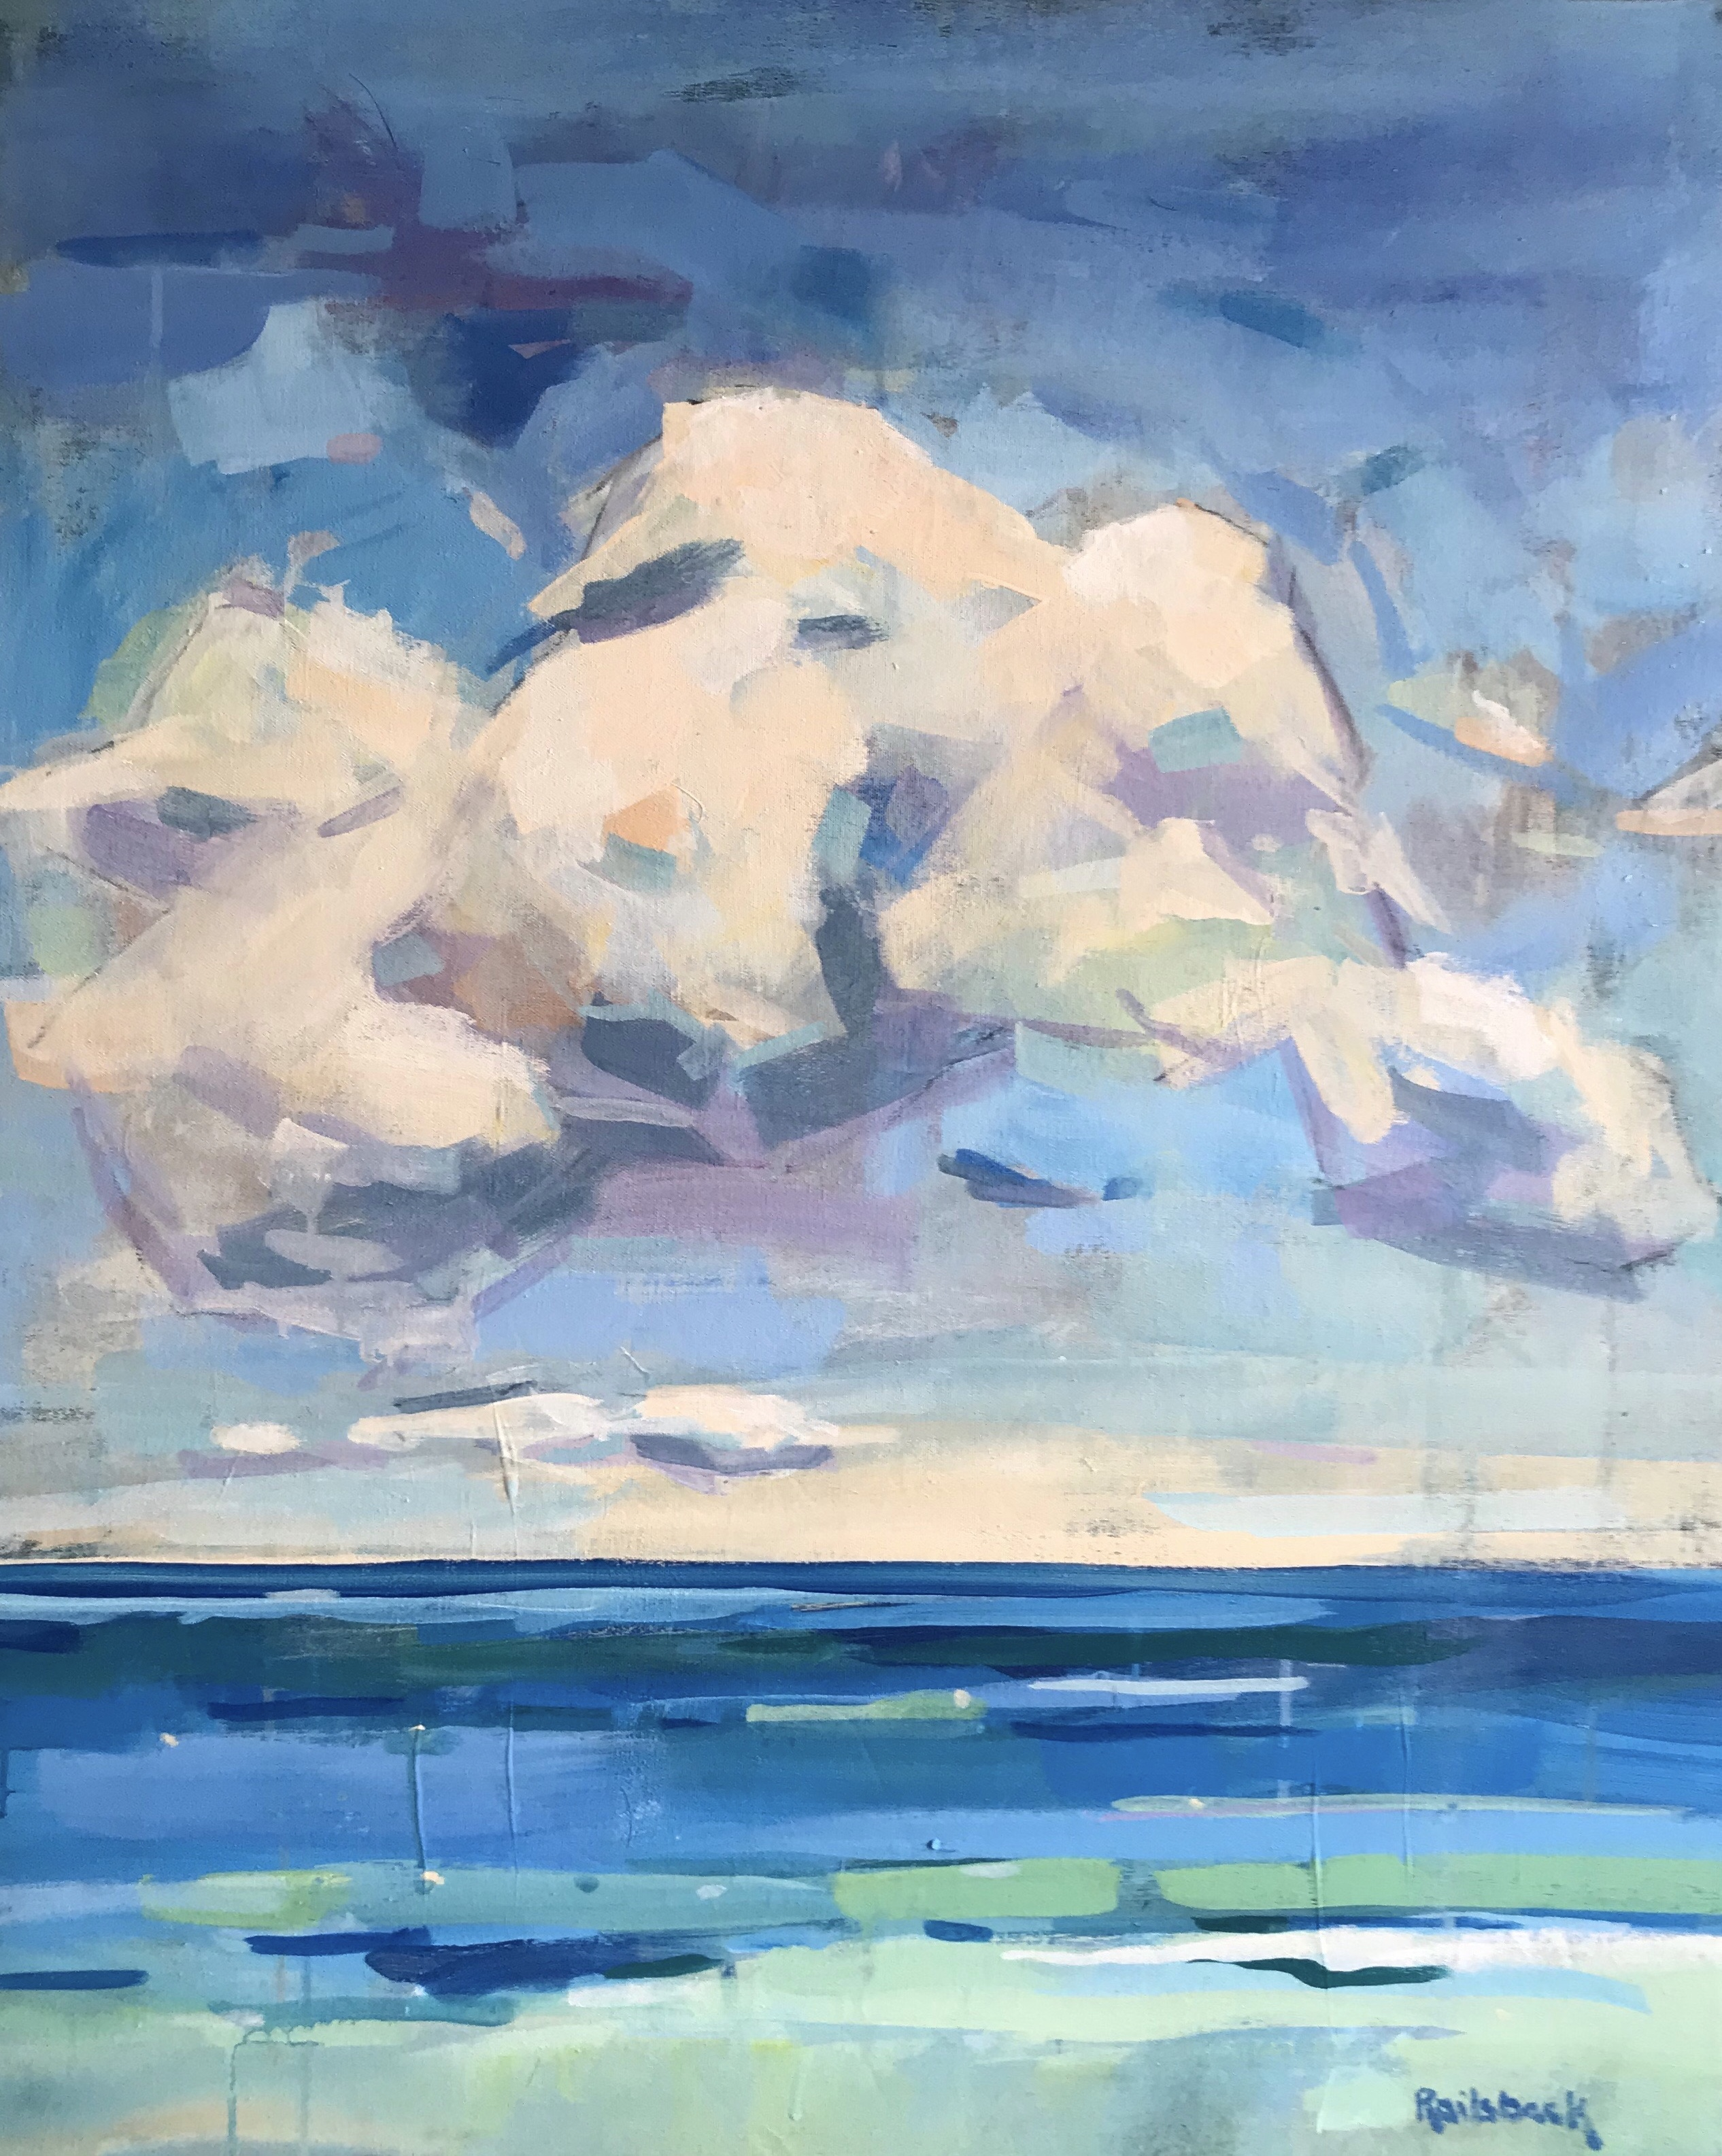 Page Railsback - Clouds 38x31